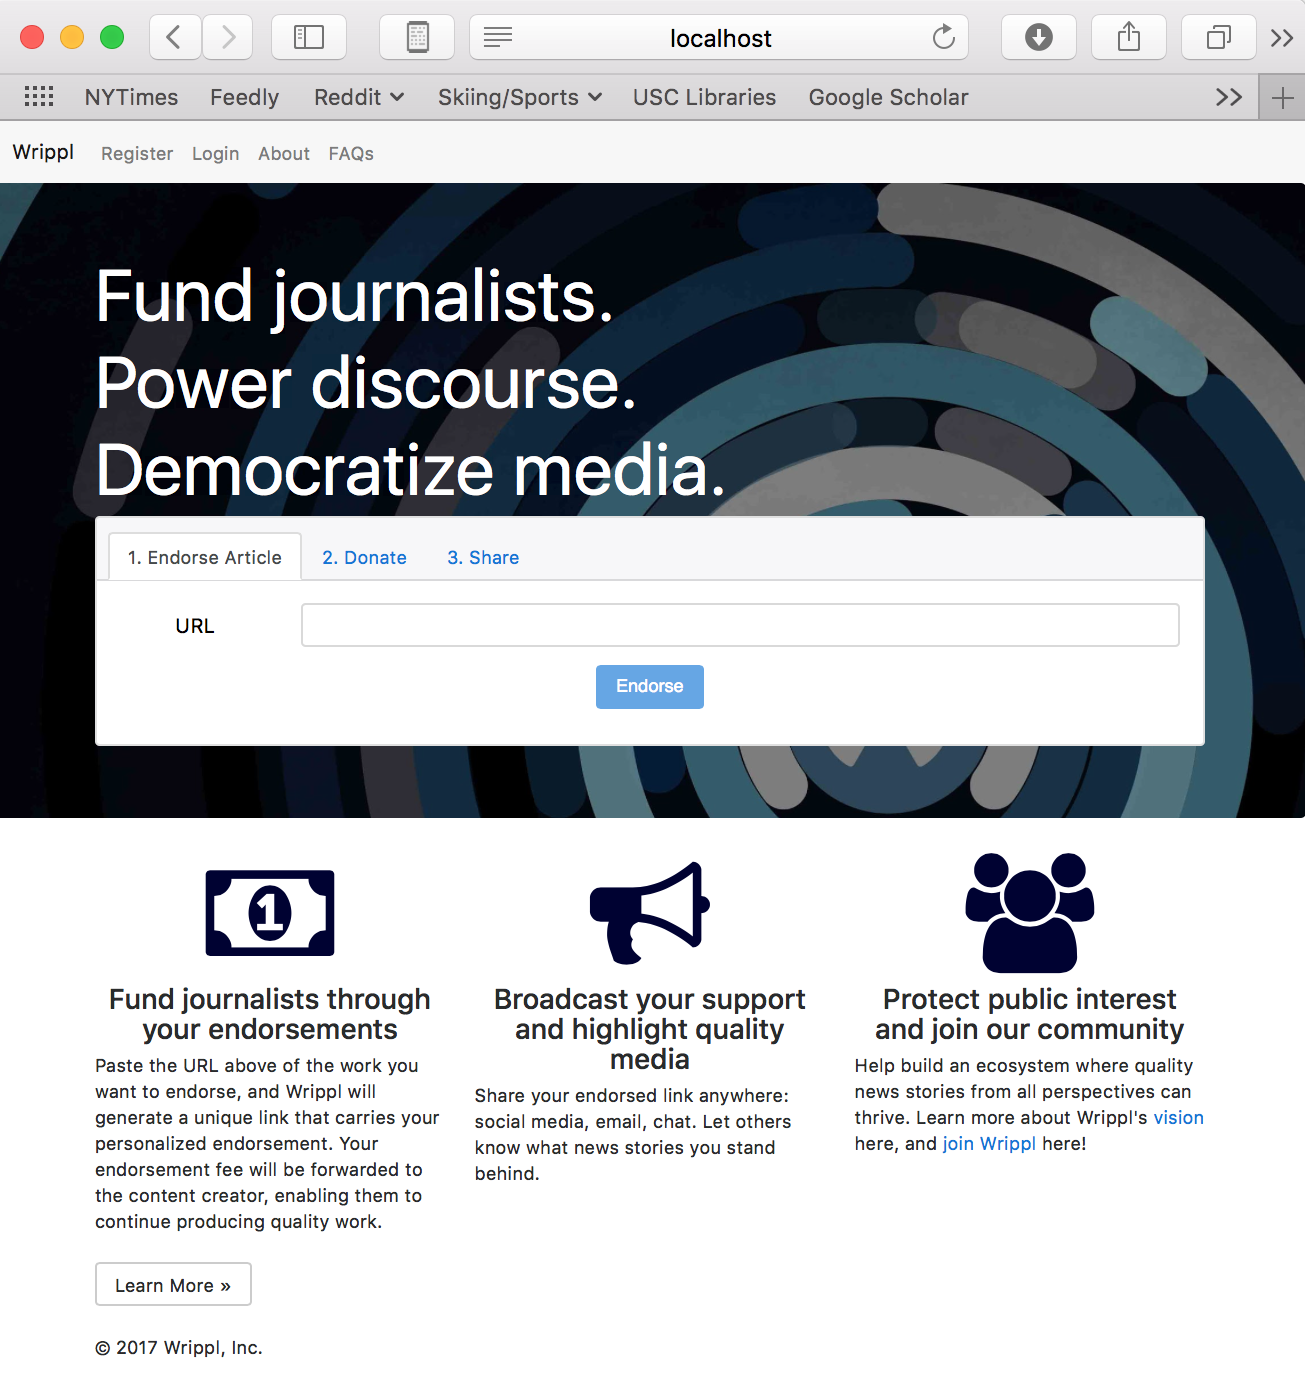 They go to wrippl.org and pay $1 to endorse the article -